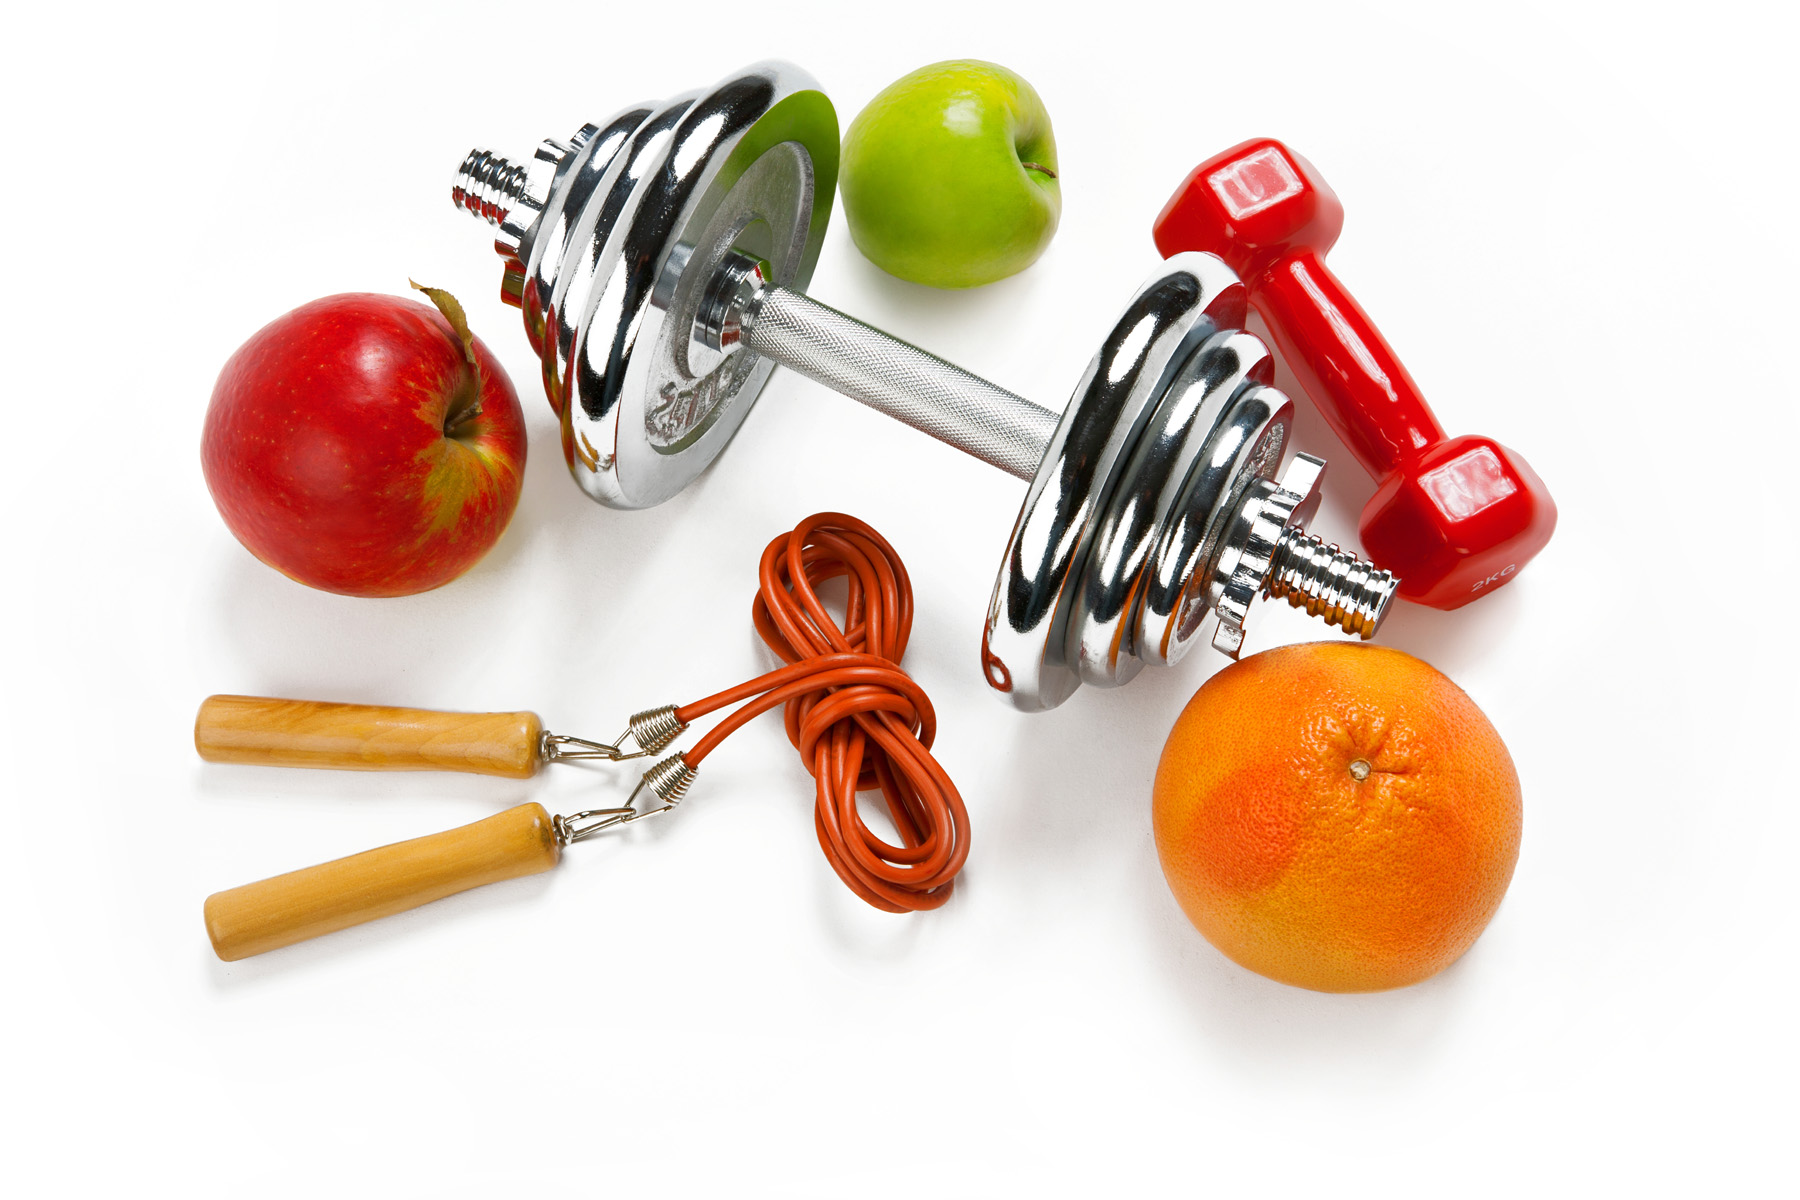 Fitness tools such as dumbbells and rope skipping 51969